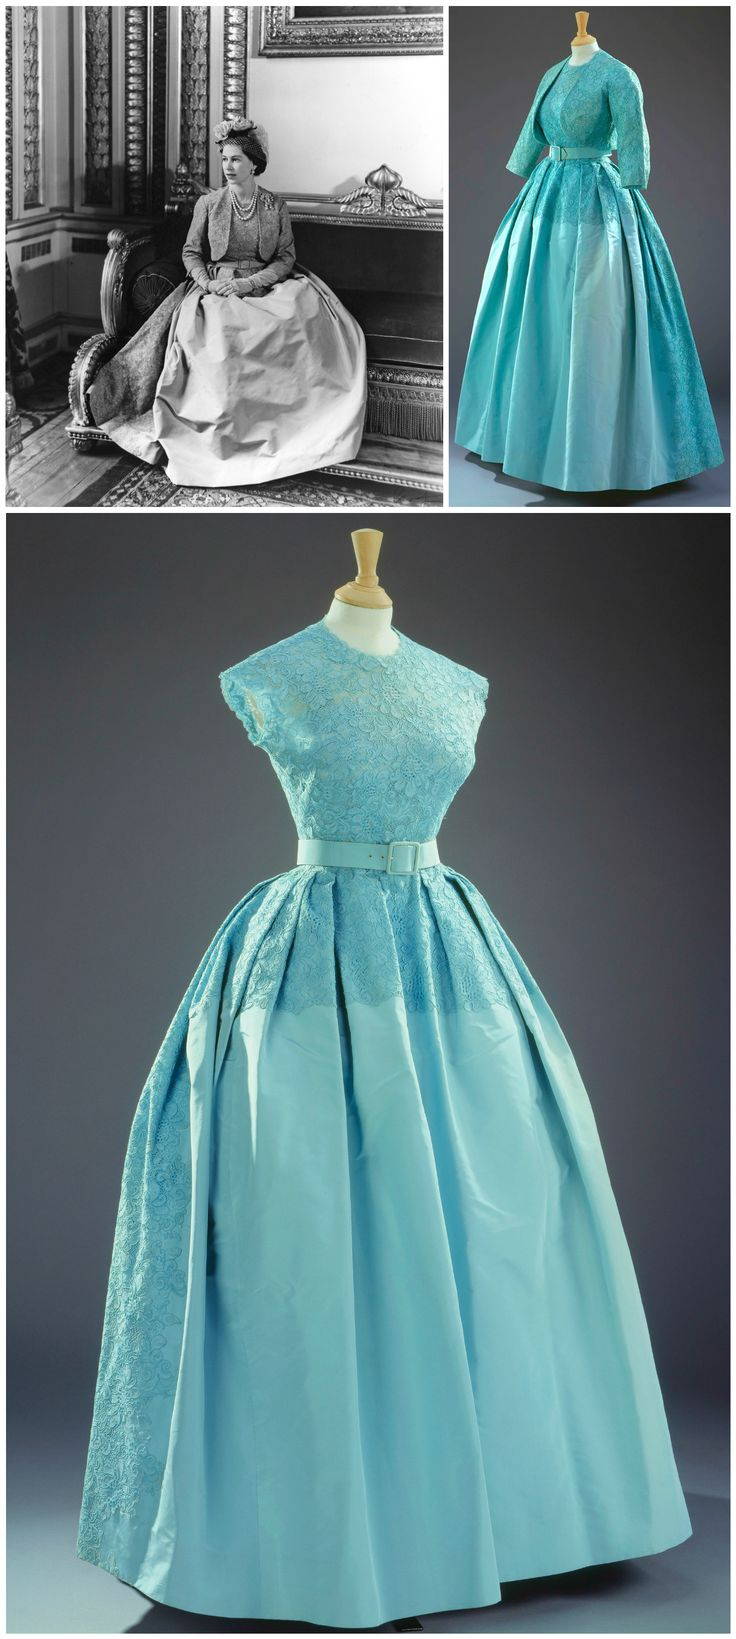 Turquoise gown with matching bolero jacket, designed by Norman Hartnell. Worn by H.M. Queen Elizabeth II to the wedding of her sister, H.R.H. Princess Margaret, in 1960. Photos: Royal Collection Trust/Her Majesty Queen Elizabeth II 2016. Photo of Queen Elizabeth by Cecil Beaton. CLICK FOR LARGER IMAGES.